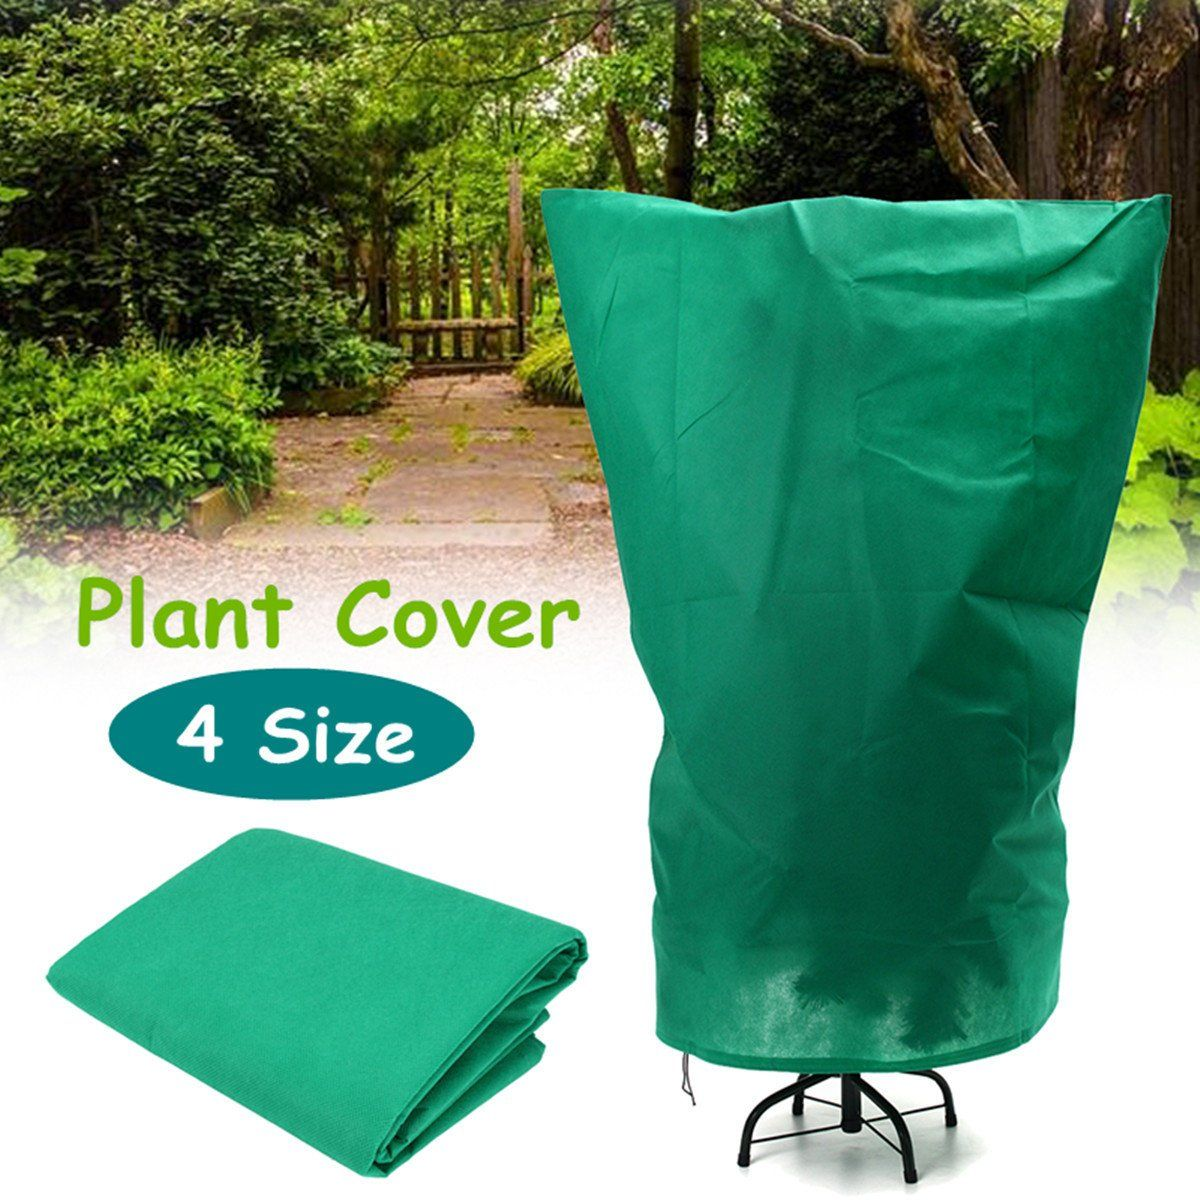 Plant Frost Protection Fleece 35gsm Warming Jacket Yard Garden Cover Tools Gardenoutdoor Plantbagaquaculture Plant Covers Plant Protection Plant Bags